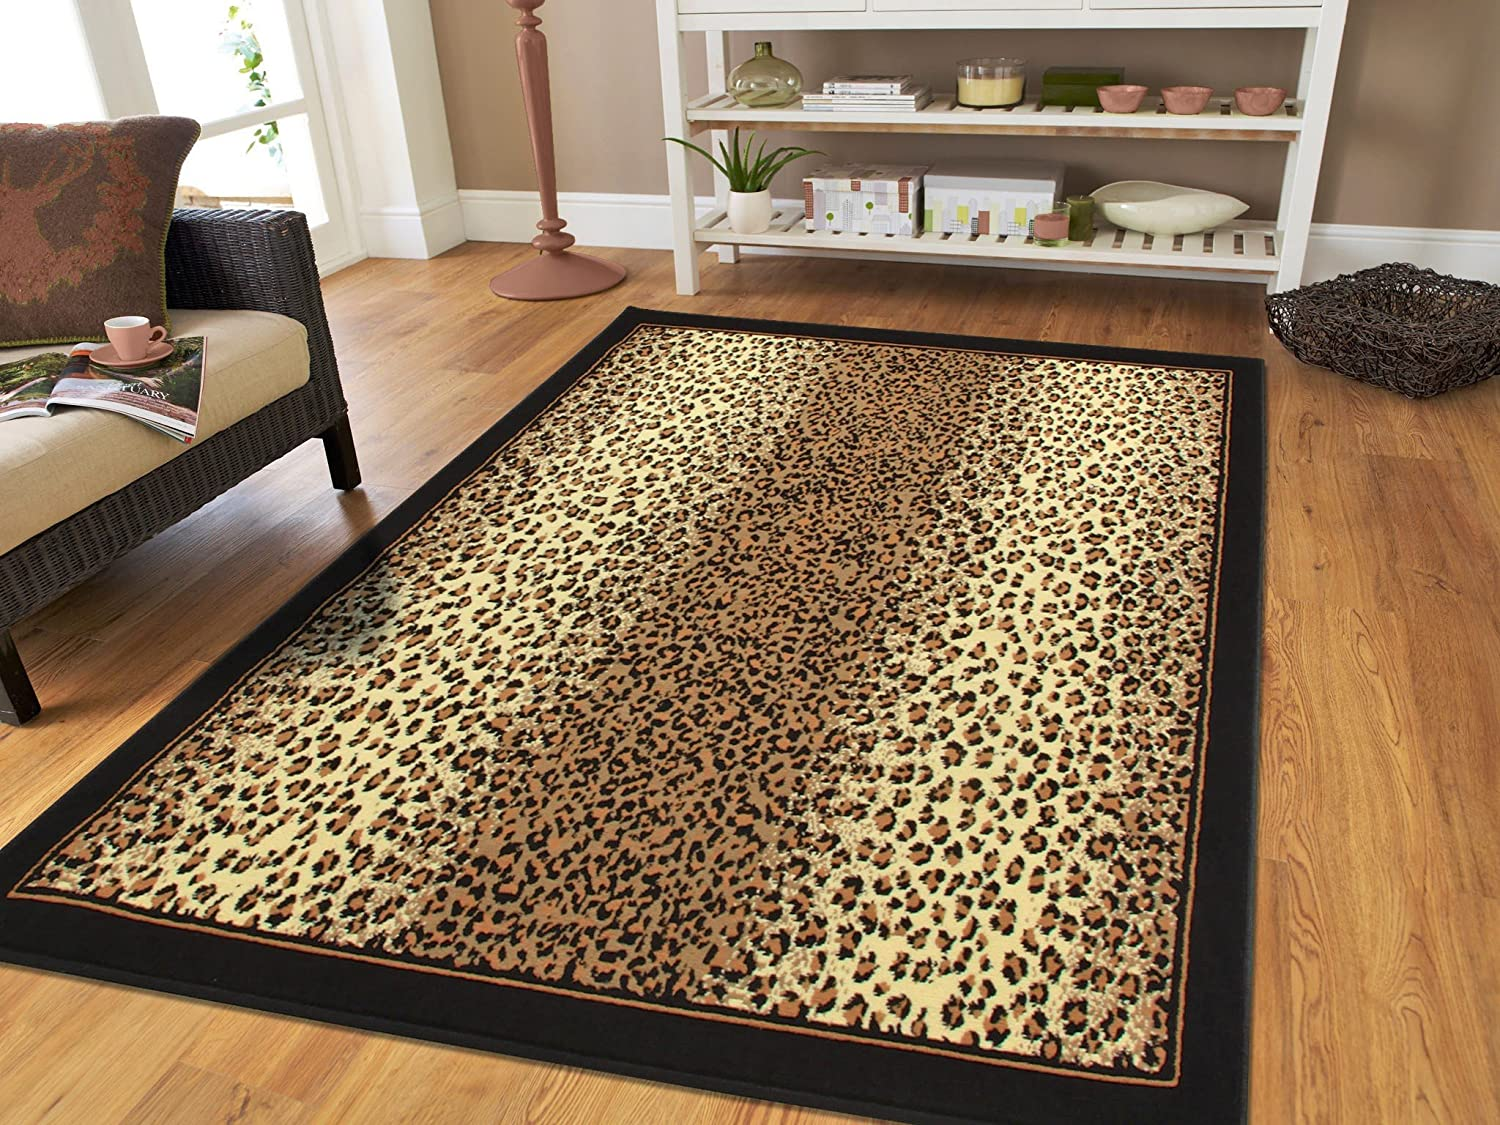 Amazon.com: Large 8x11 Cheetah Rug Animal Print Rectangle Leopard Rugs  Contemporary 8x10 Rugs For Living Room Modern Animal Rugs (Large 8u0027x11u0027 Rug):  Kitchen ... Part 35